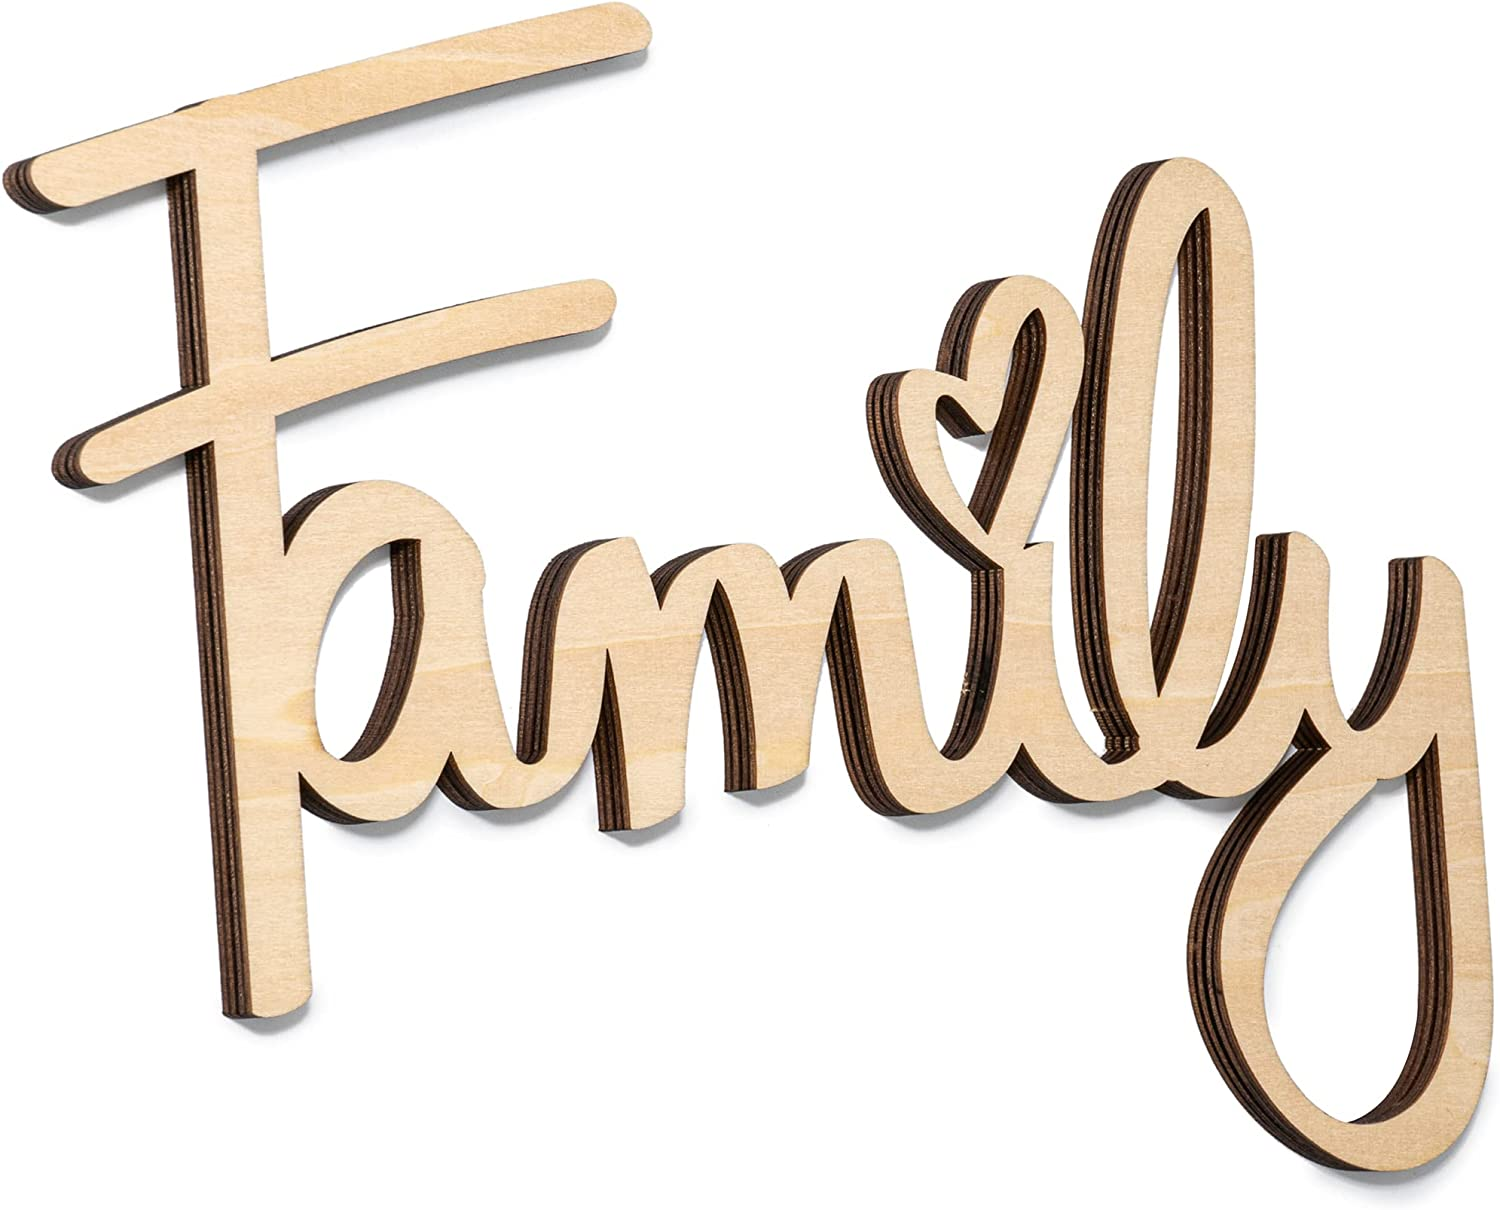 Way Of Hearts Wooden Family Sign for Wall Decor - Rustic Family Wall Decor - Farmhouse Wall Decorations for Living Room, Great Gift for Room Decor - DIY Unfinished Natural Plywood Cut Out 9.45